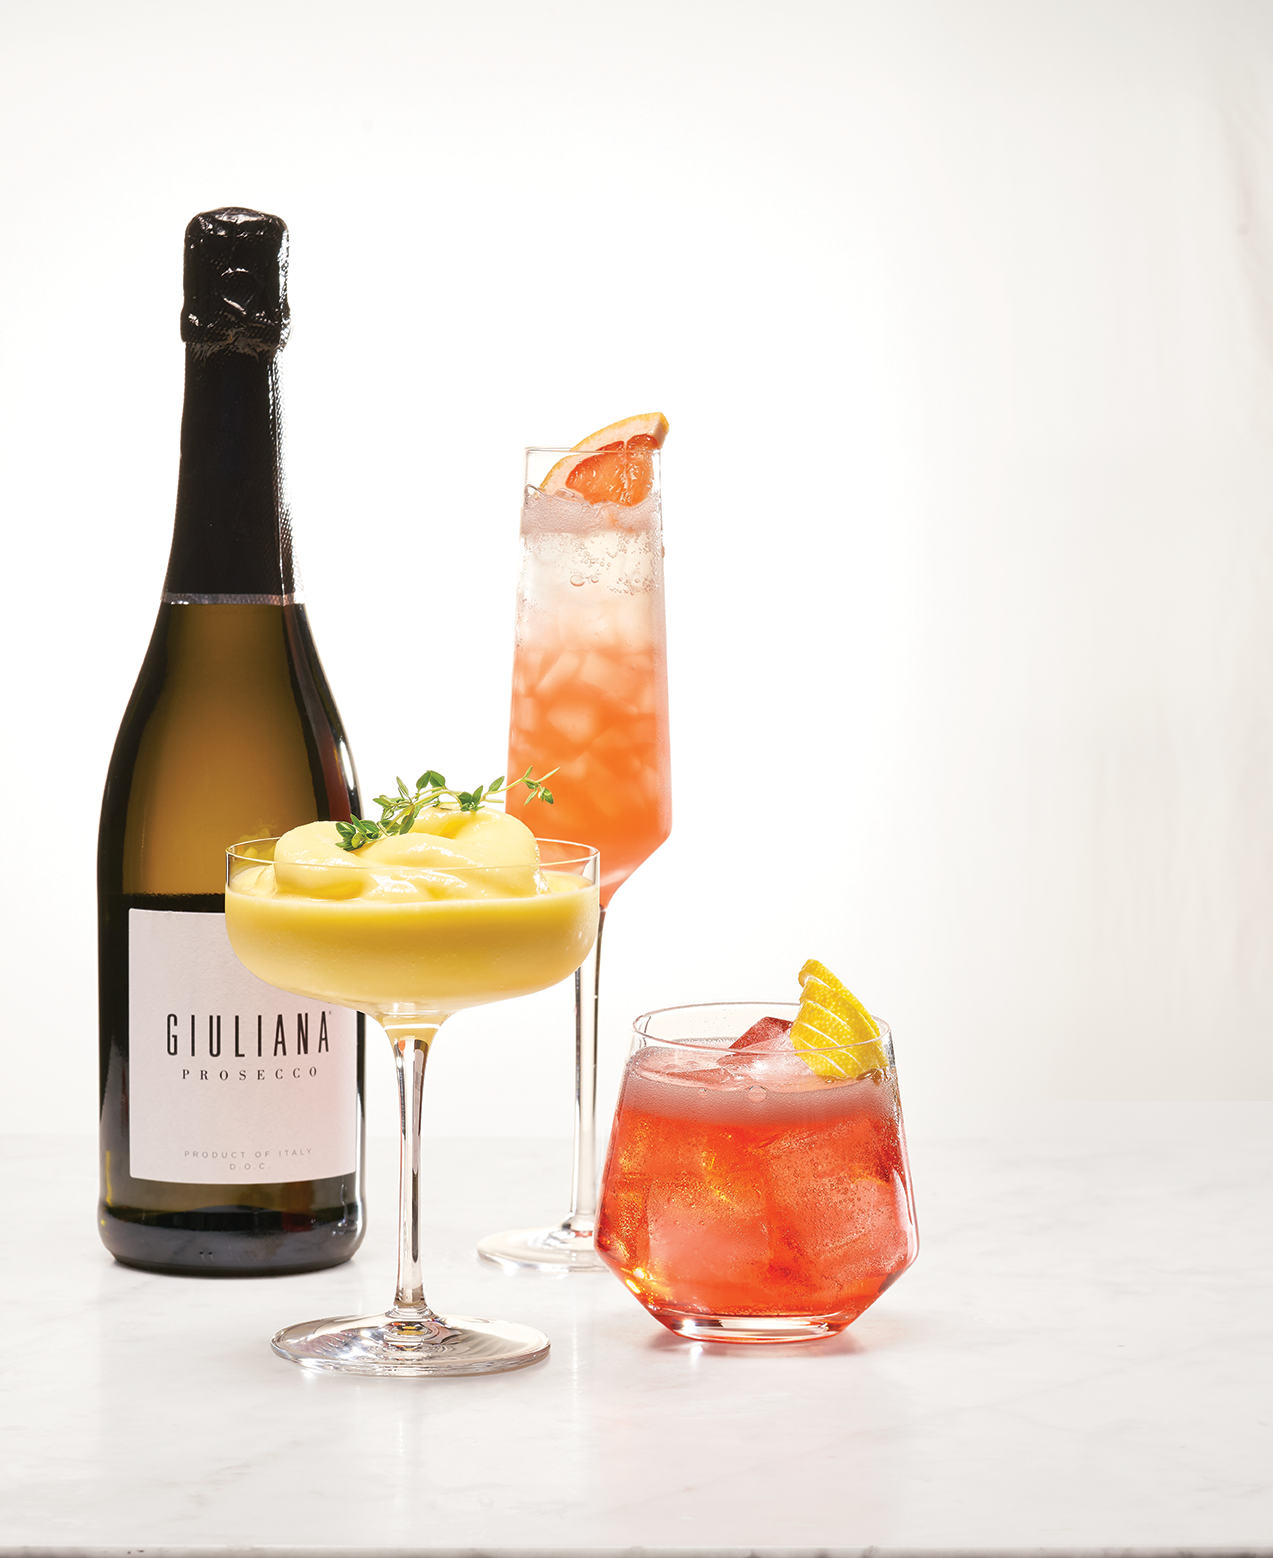 A display of the three cocktail recipes and a bottle of Giuliana Prosecco.